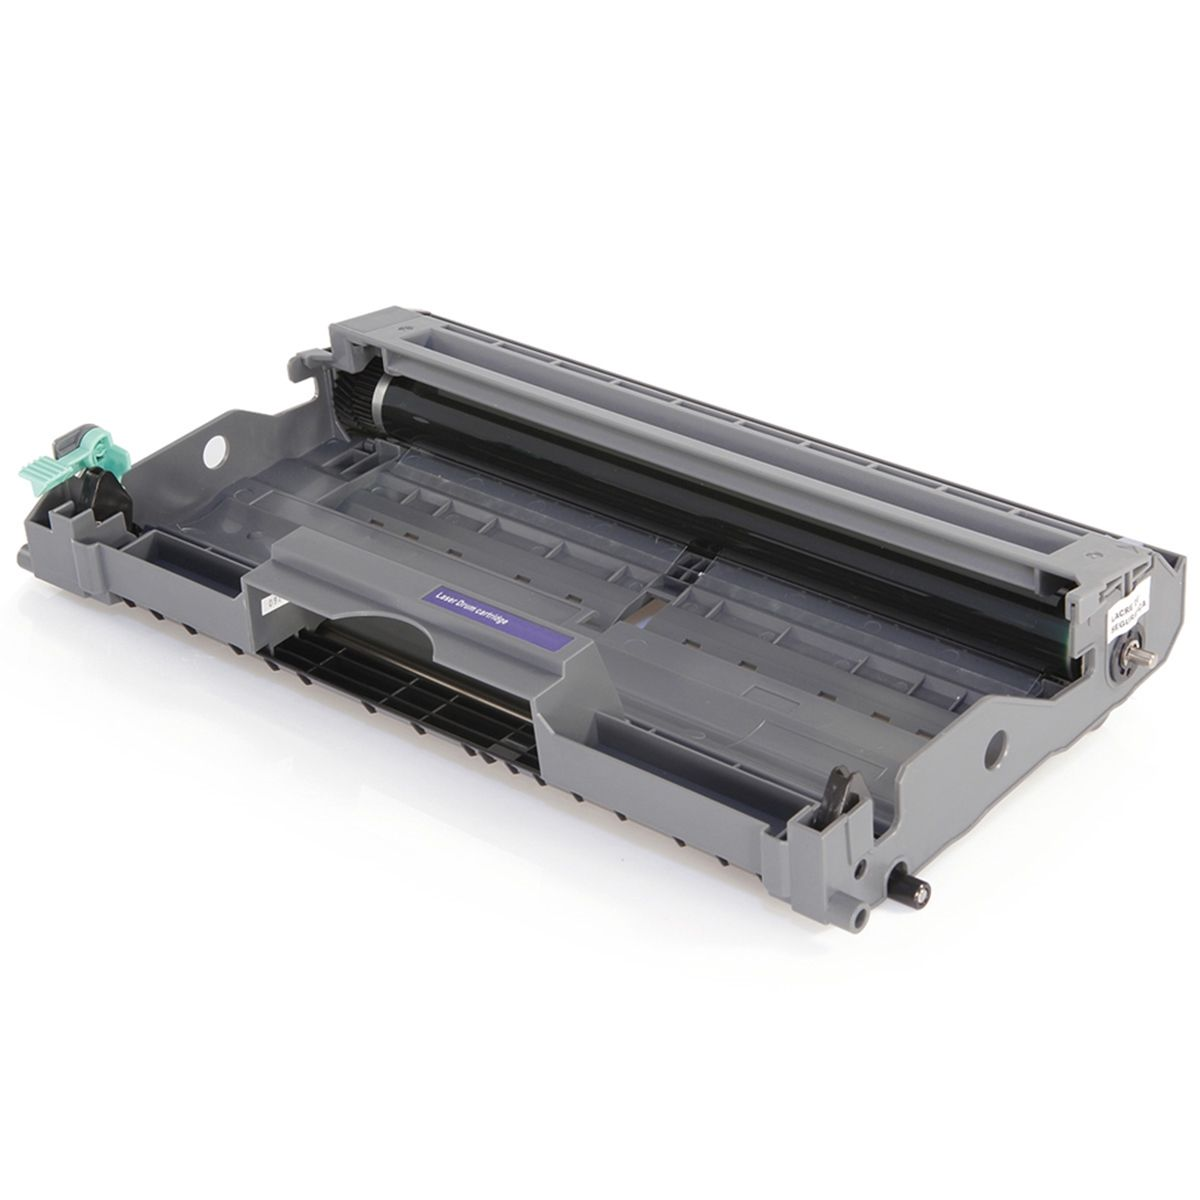 Fotocondutor DR420 para Toner Brother TN410 TN420 TN450 Compatível 12k